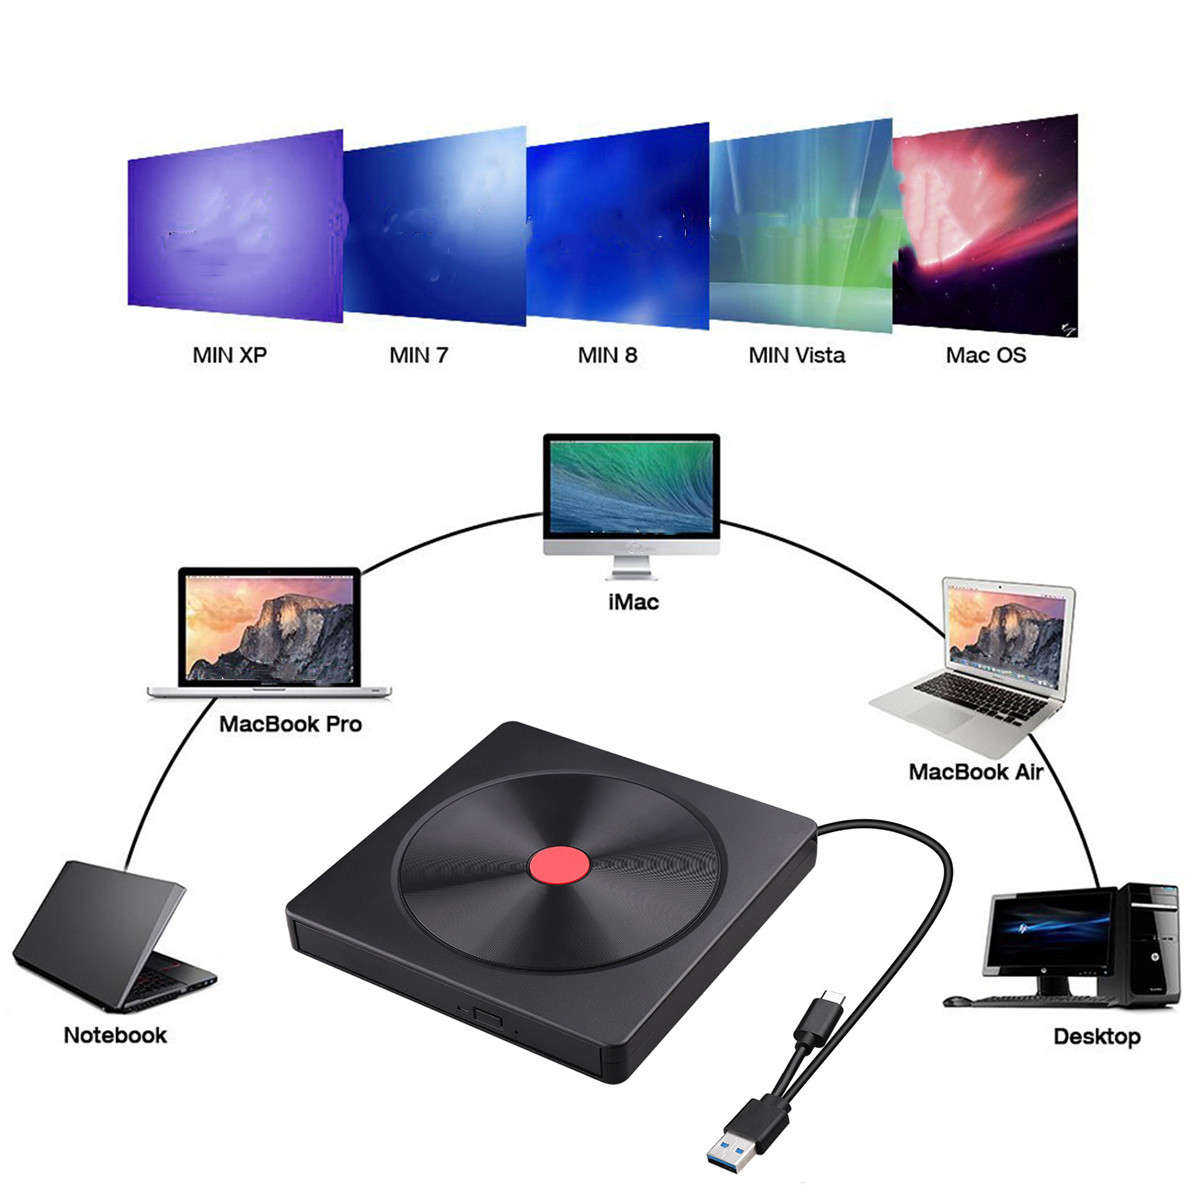 Optical Drive Notebook Desktop Universal External Mobile Portable Universal High-Speed Disc Reader Ultra-Thin External DVD//CD Burner Desktop Laptop Mobile USB External CD//DVD Drive